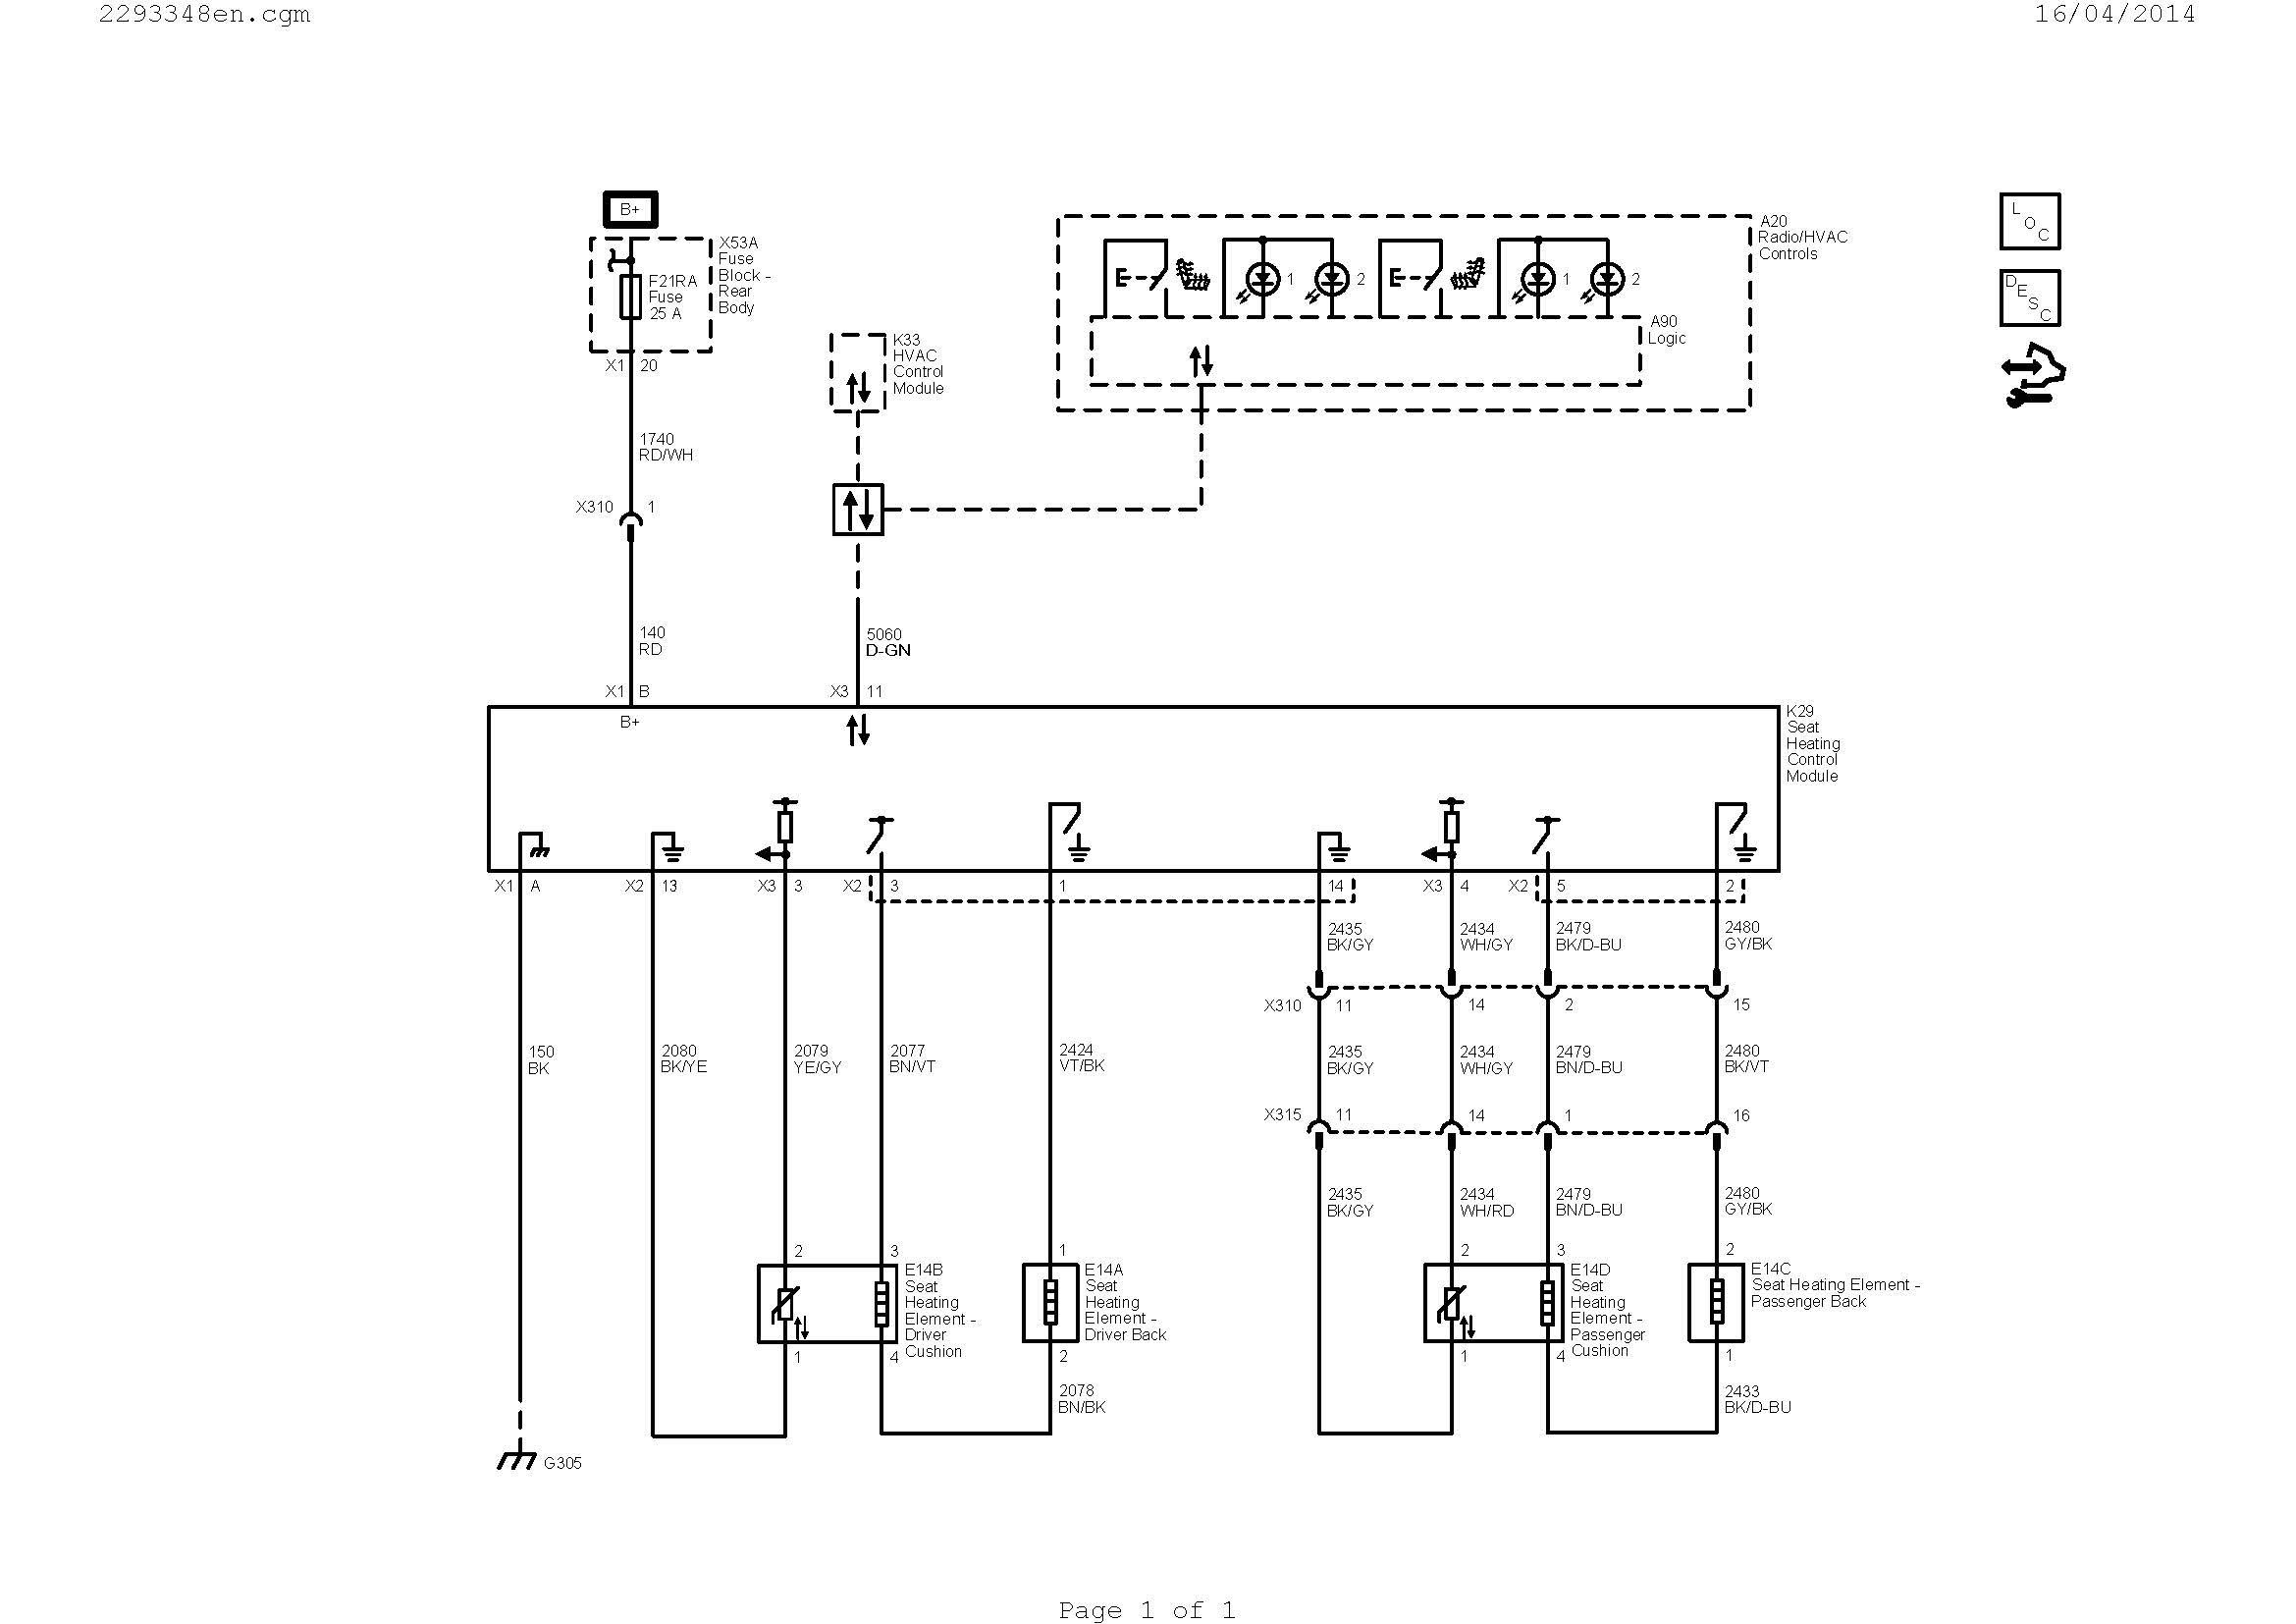 nest e wiring diagram Download-7 wire thermostat wiring diagram Download Wiring A Ac Thermostat Diagram New Wiring Diagram Ac 17-p